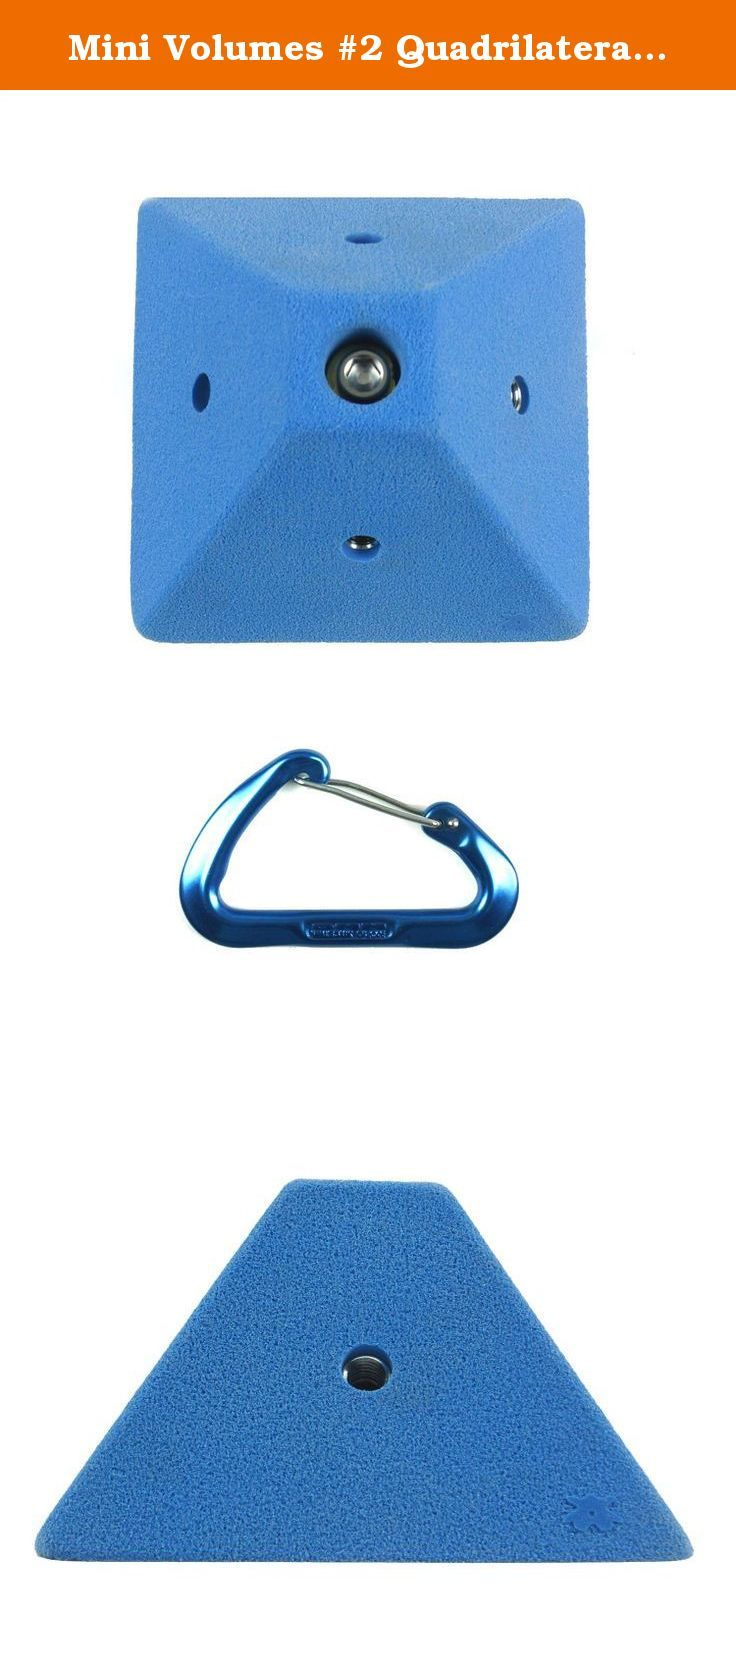 "Mini Volumes #2 Quadrilateral | Climbing Holds | Blue. Mini Volumes #2 Quadrilateral Dimensions: 5-1/4"" x 5-1/4"" x 5-1/4"" Stands off wall: 3-1/4"" T-nuts installed: 4 round base brad hole t-nuts Attachment method : 3/8-16 Allan head bolt."